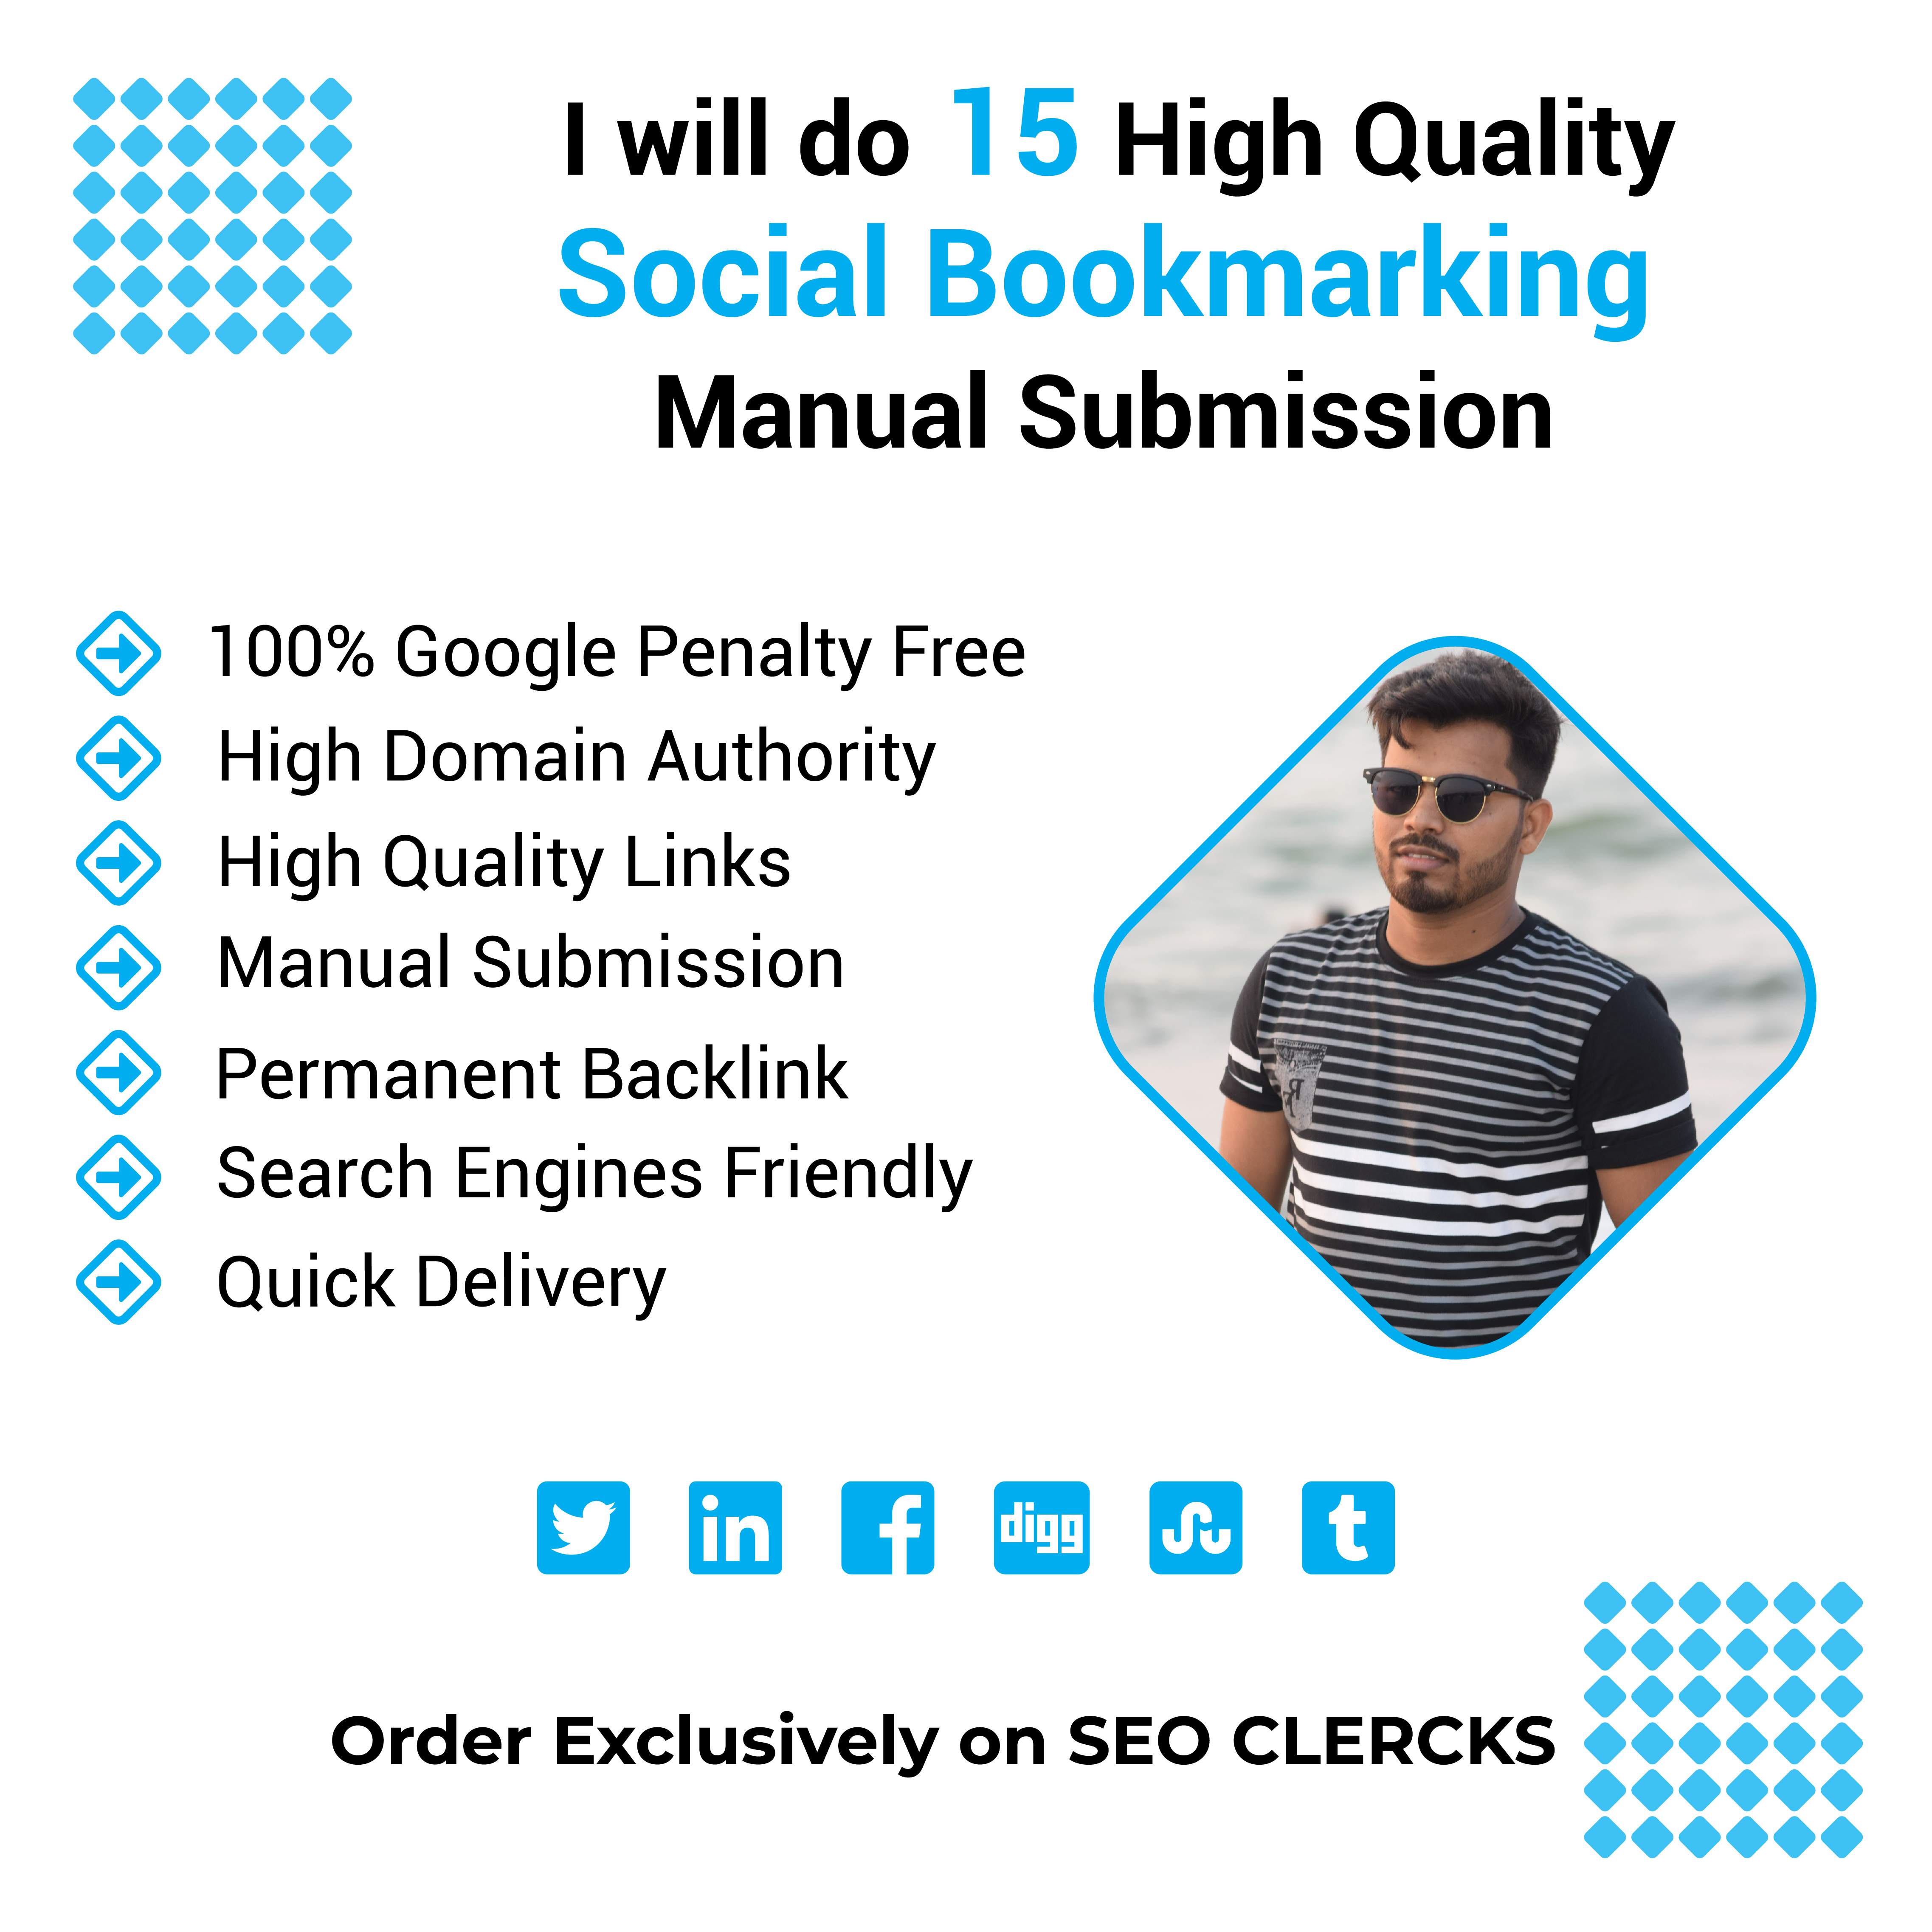 I will do 15 High Quality Social Bookmarking Manual Submission